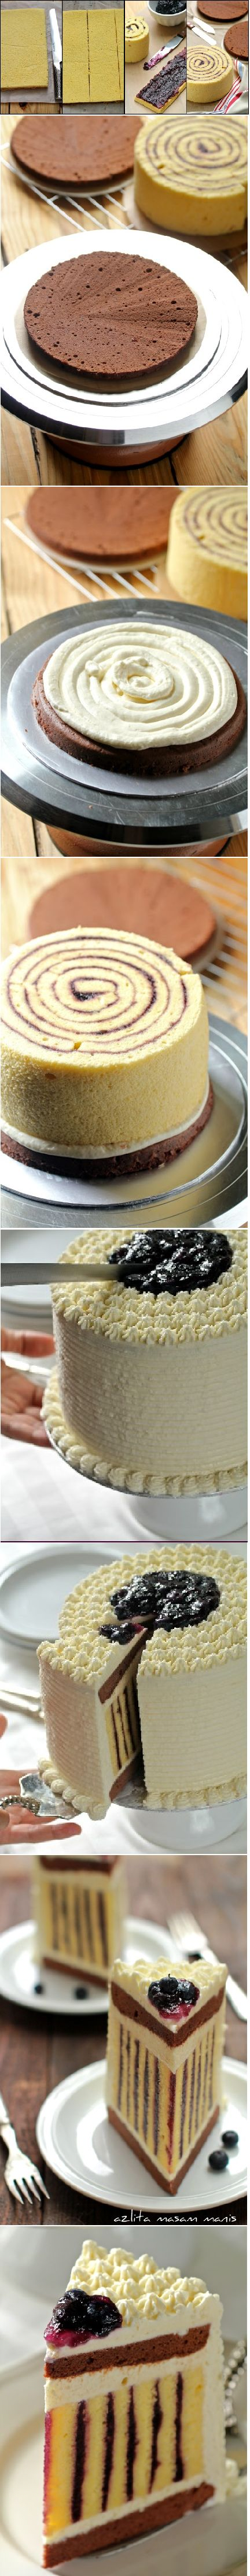 How To Make A Striped Cake